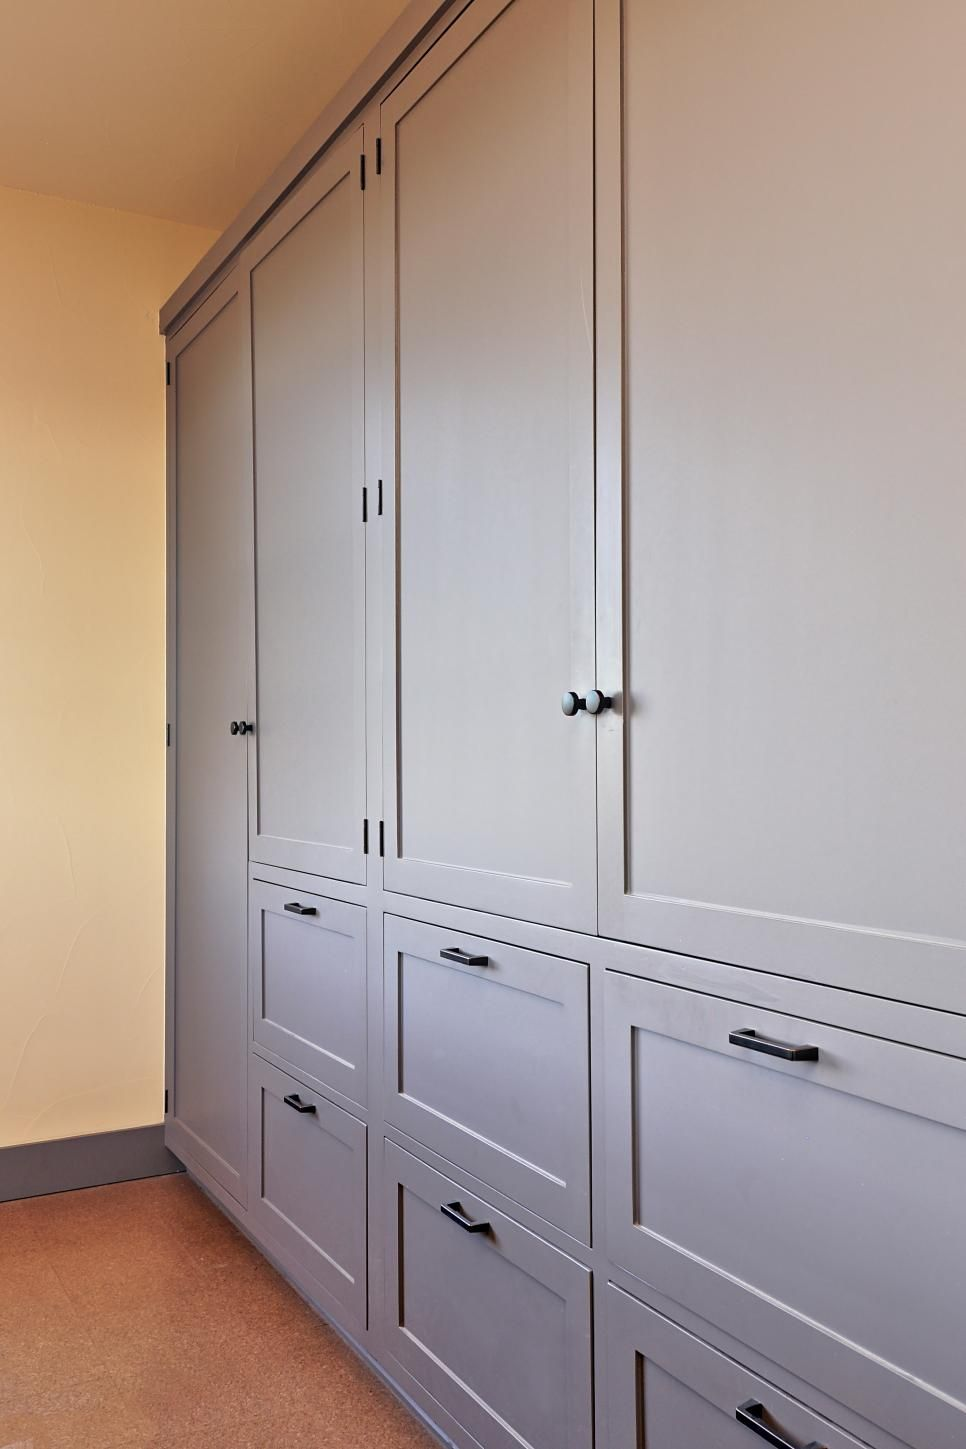 Built-In Bedroom Storage Cabinets | Bedroom Storage Cabinets, Build A Closet, Floor To Ceiling Cabinets